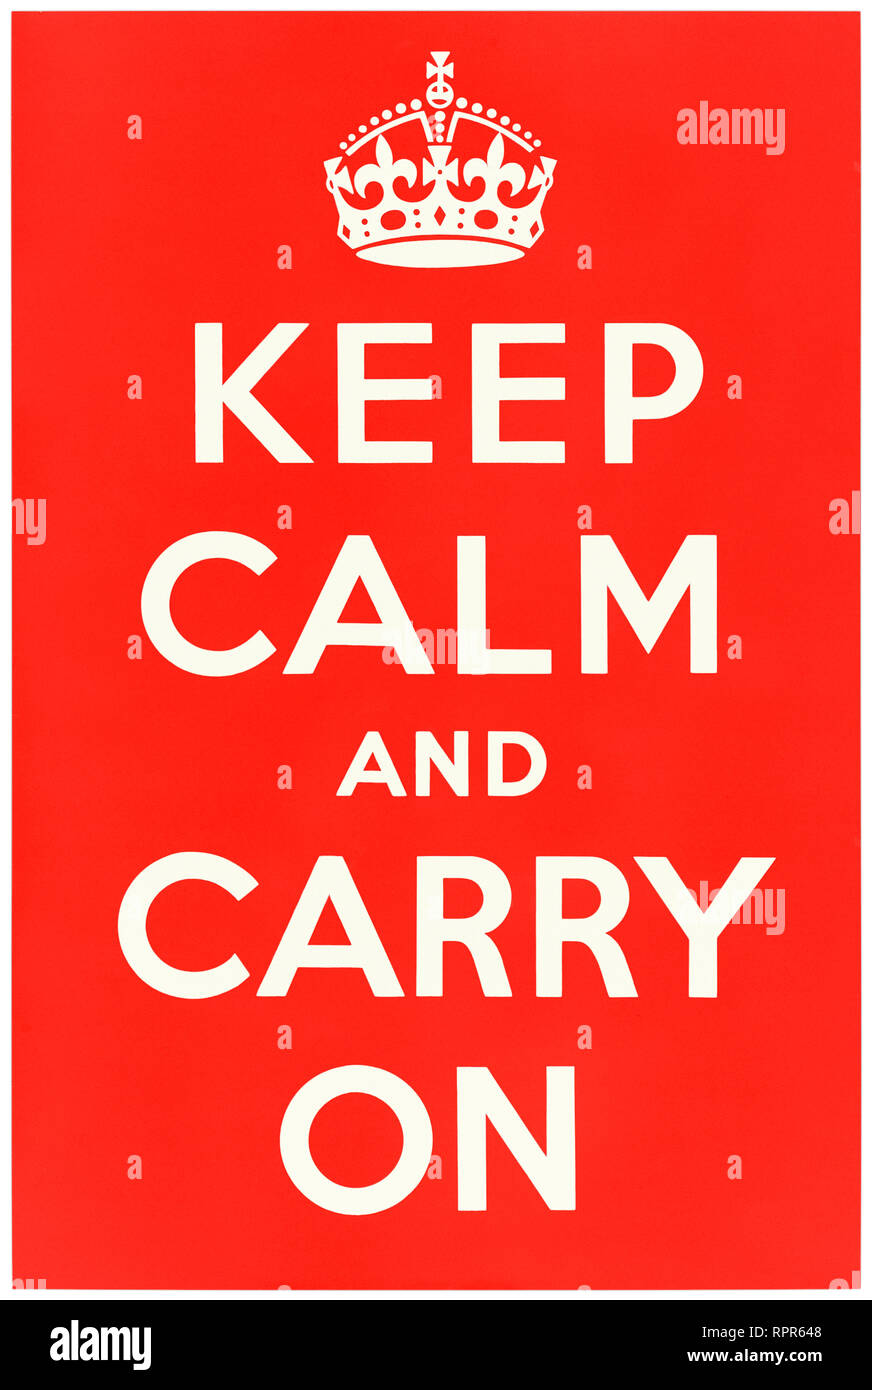 Keep Calm and Carry On (1939) poster designed by the Ministry of Information a United Kingdom central government department responsible for publicity and propaganda. See more information below. - Stock Image